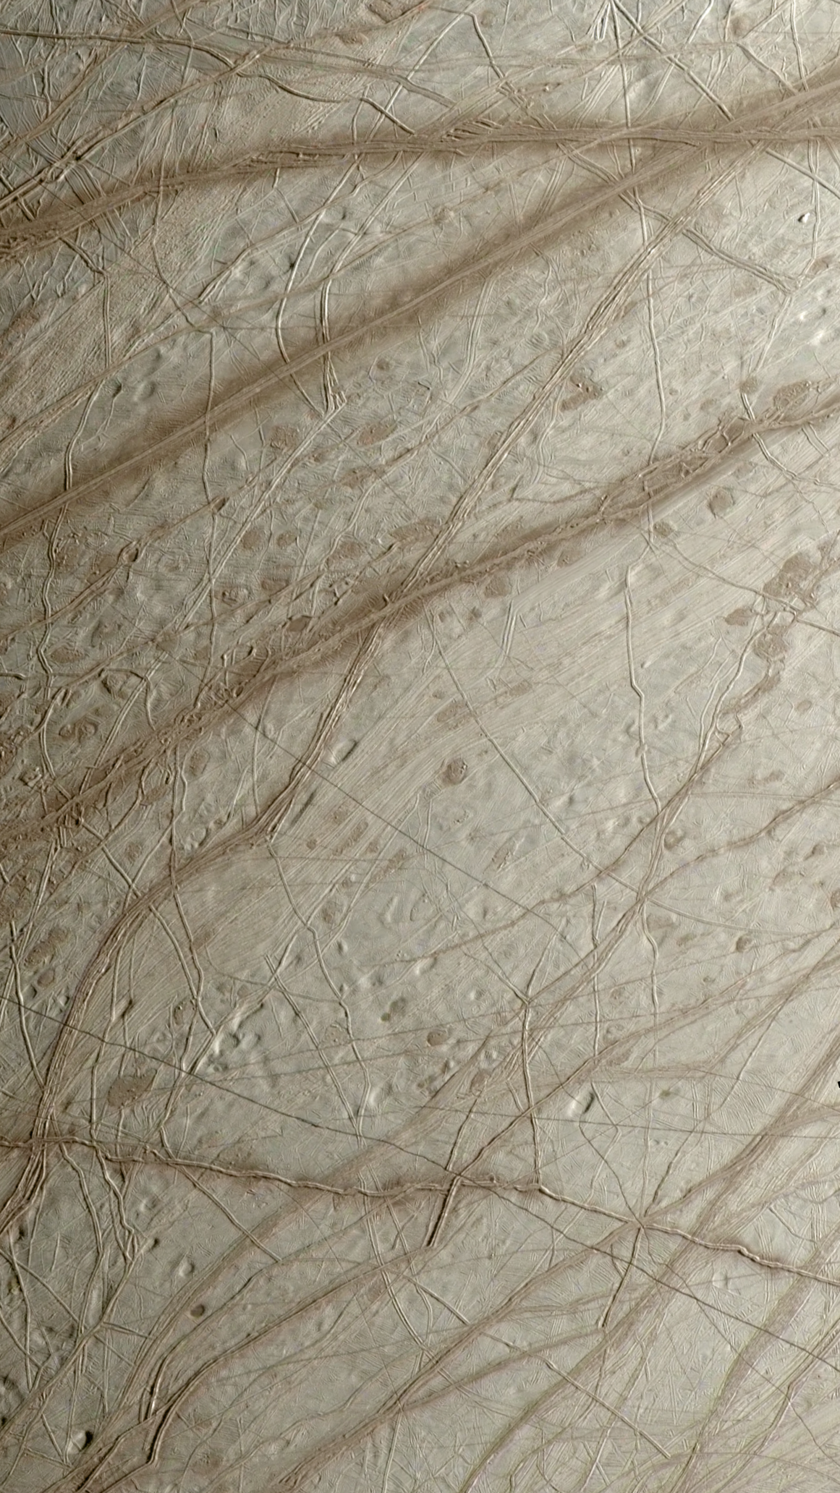 Europa's diverse surface